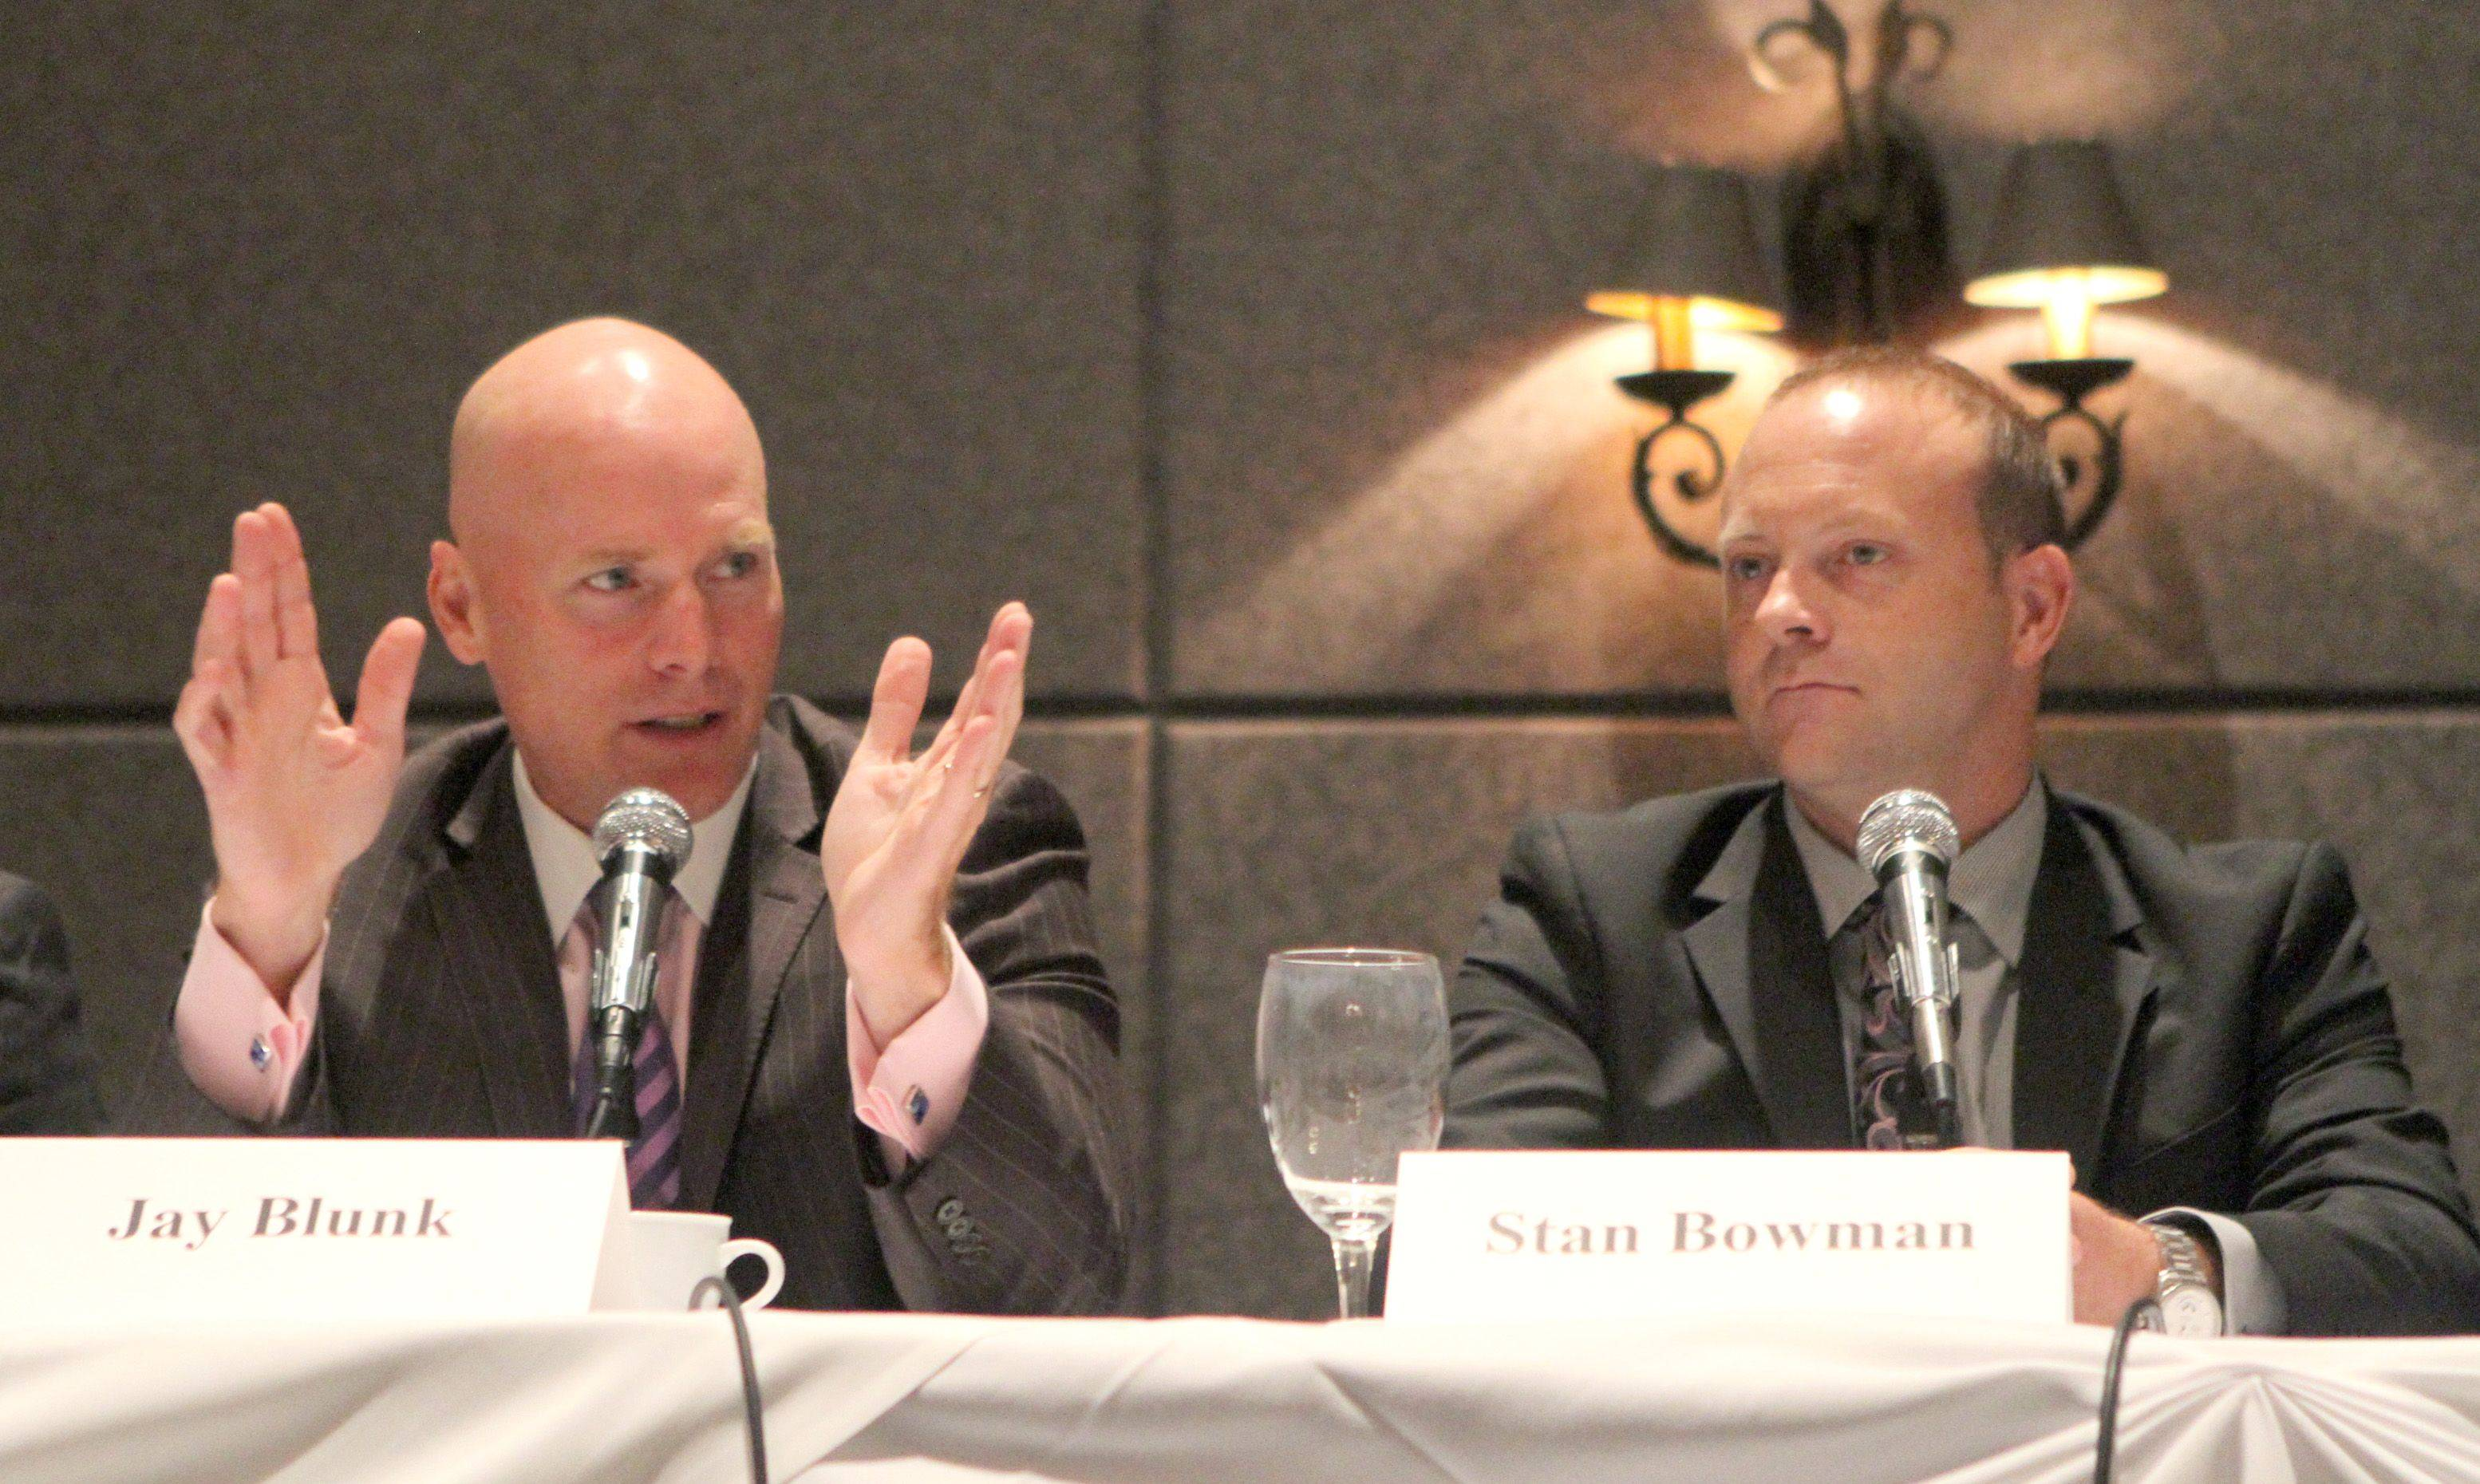 Jay Blunk, executive vice president of the Chicago Blackhawks, and Stan Bowman, vice president/general manager of the Chicago Blackhawks, answer questions at the Daily Herald Business Ledger Newsmakers Forum Thursday in Hoffman Estates.